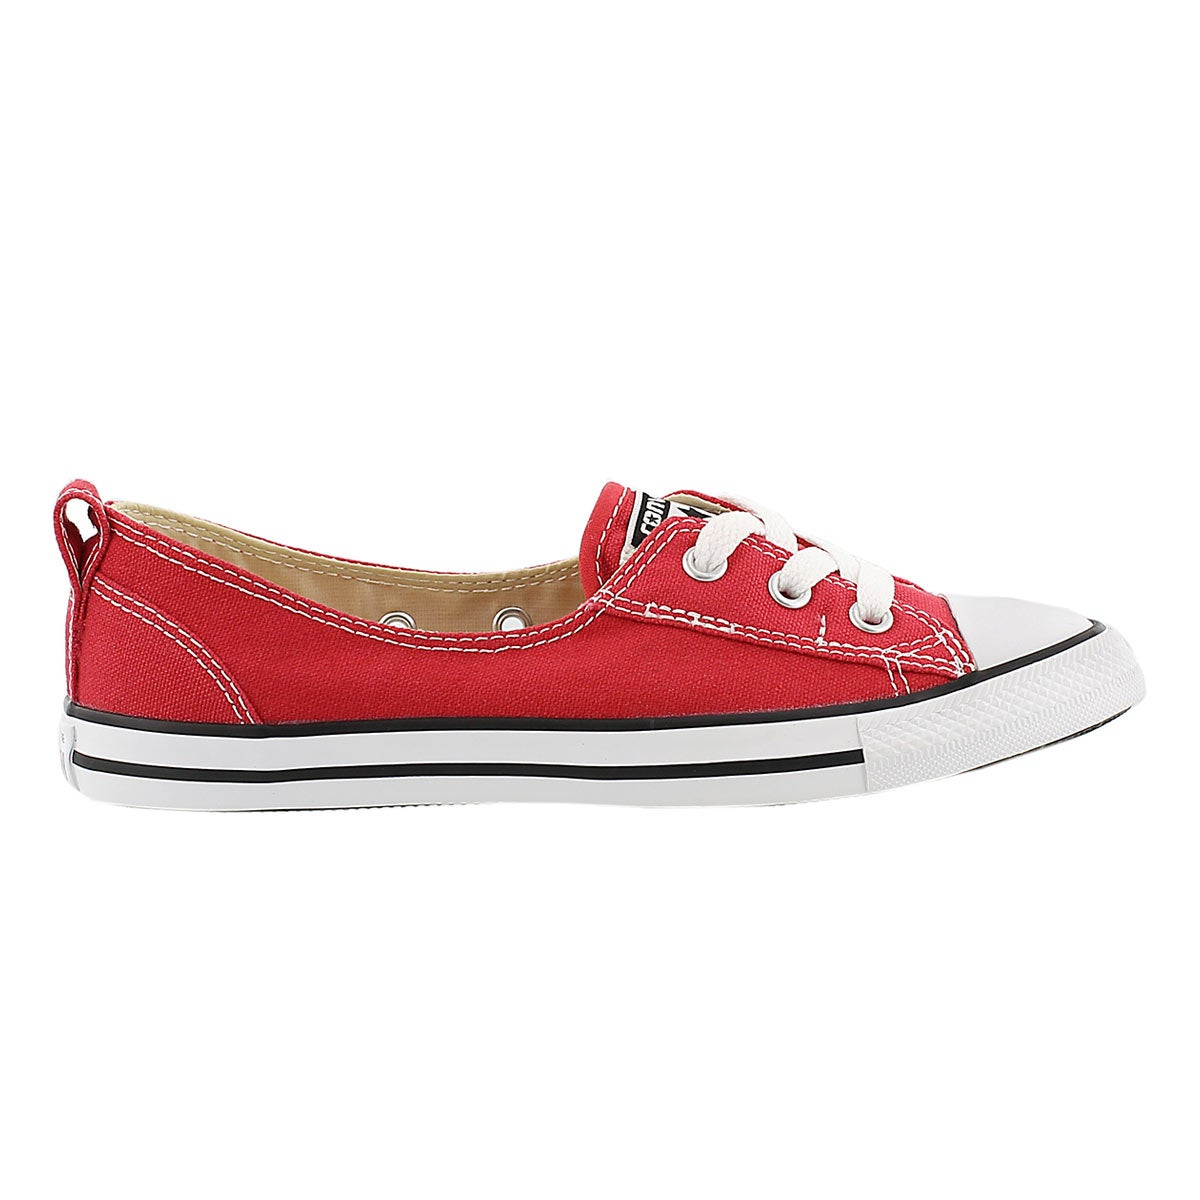 Lds CT A/S Ballet Lace red slip on